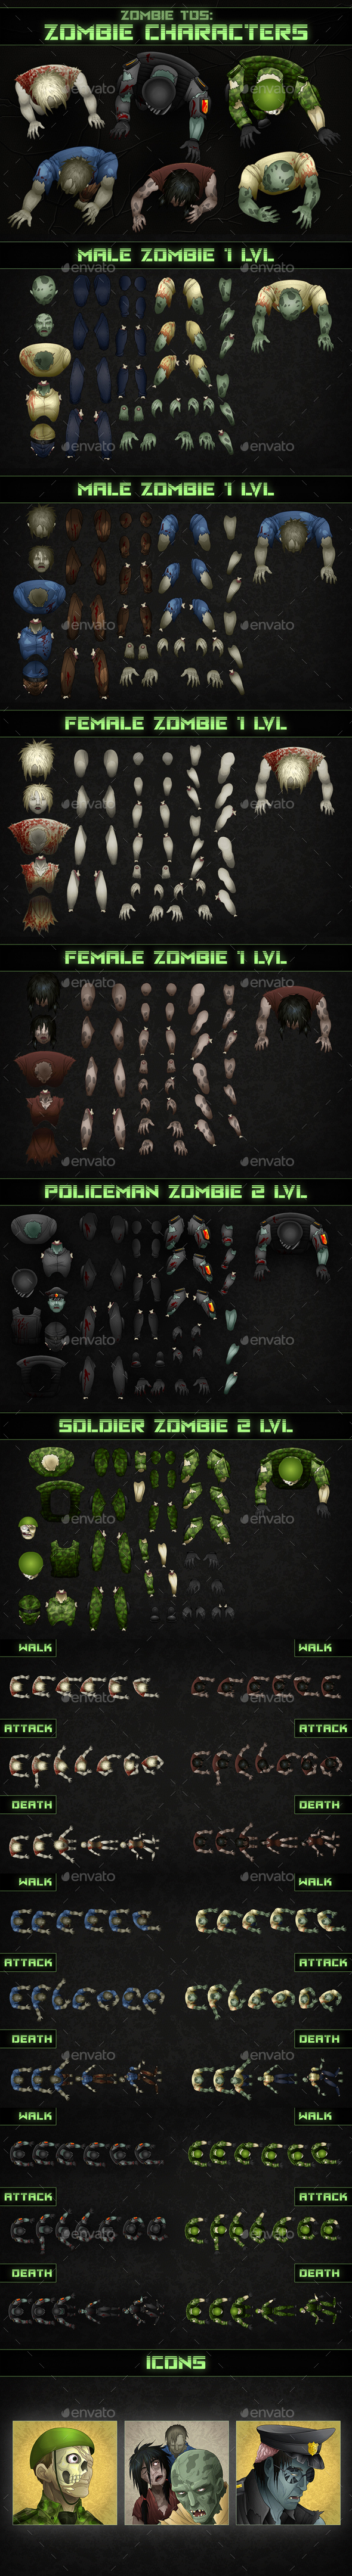 Top-Down Shooter: Zombie - Sprites Game Assets